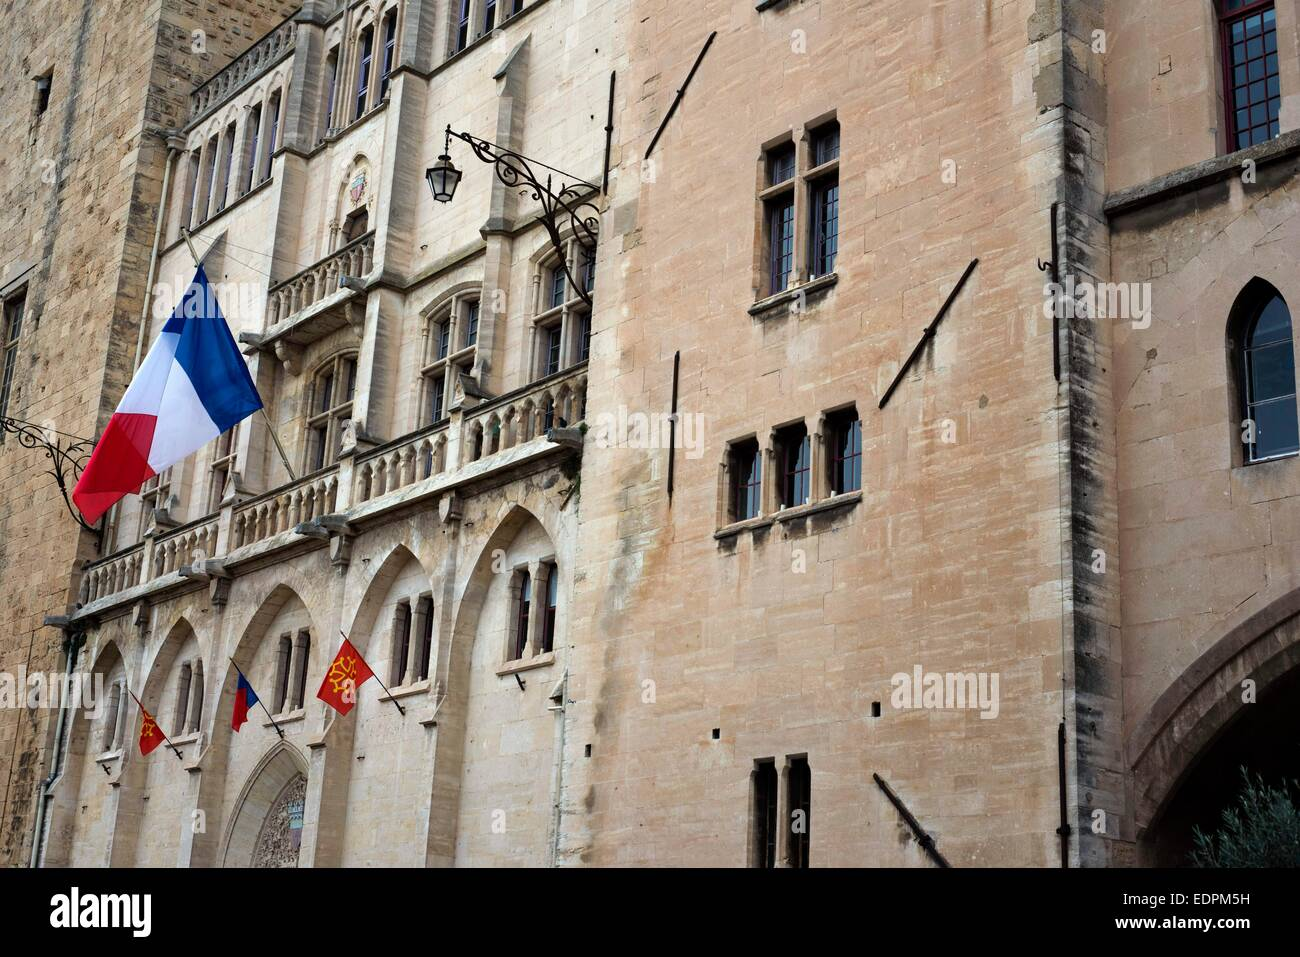 https www alamy com stock photo town hall square narbonne pedestrian shopping street in old city central 77330781 html